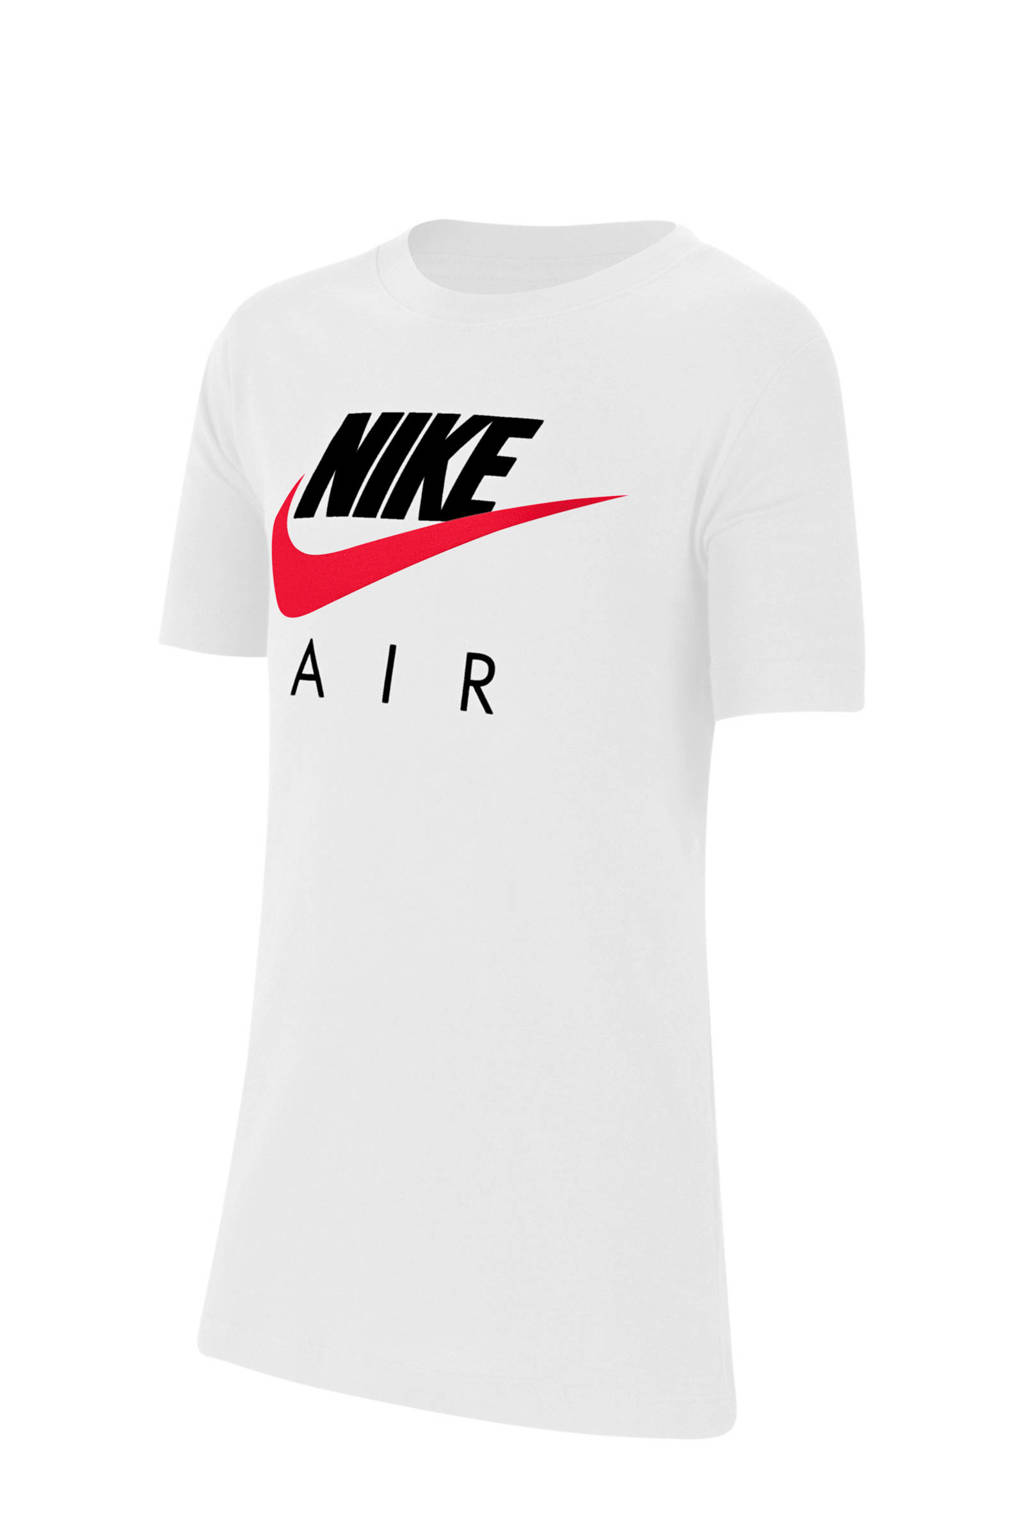 Nike T-shirt wit, Wit/rood